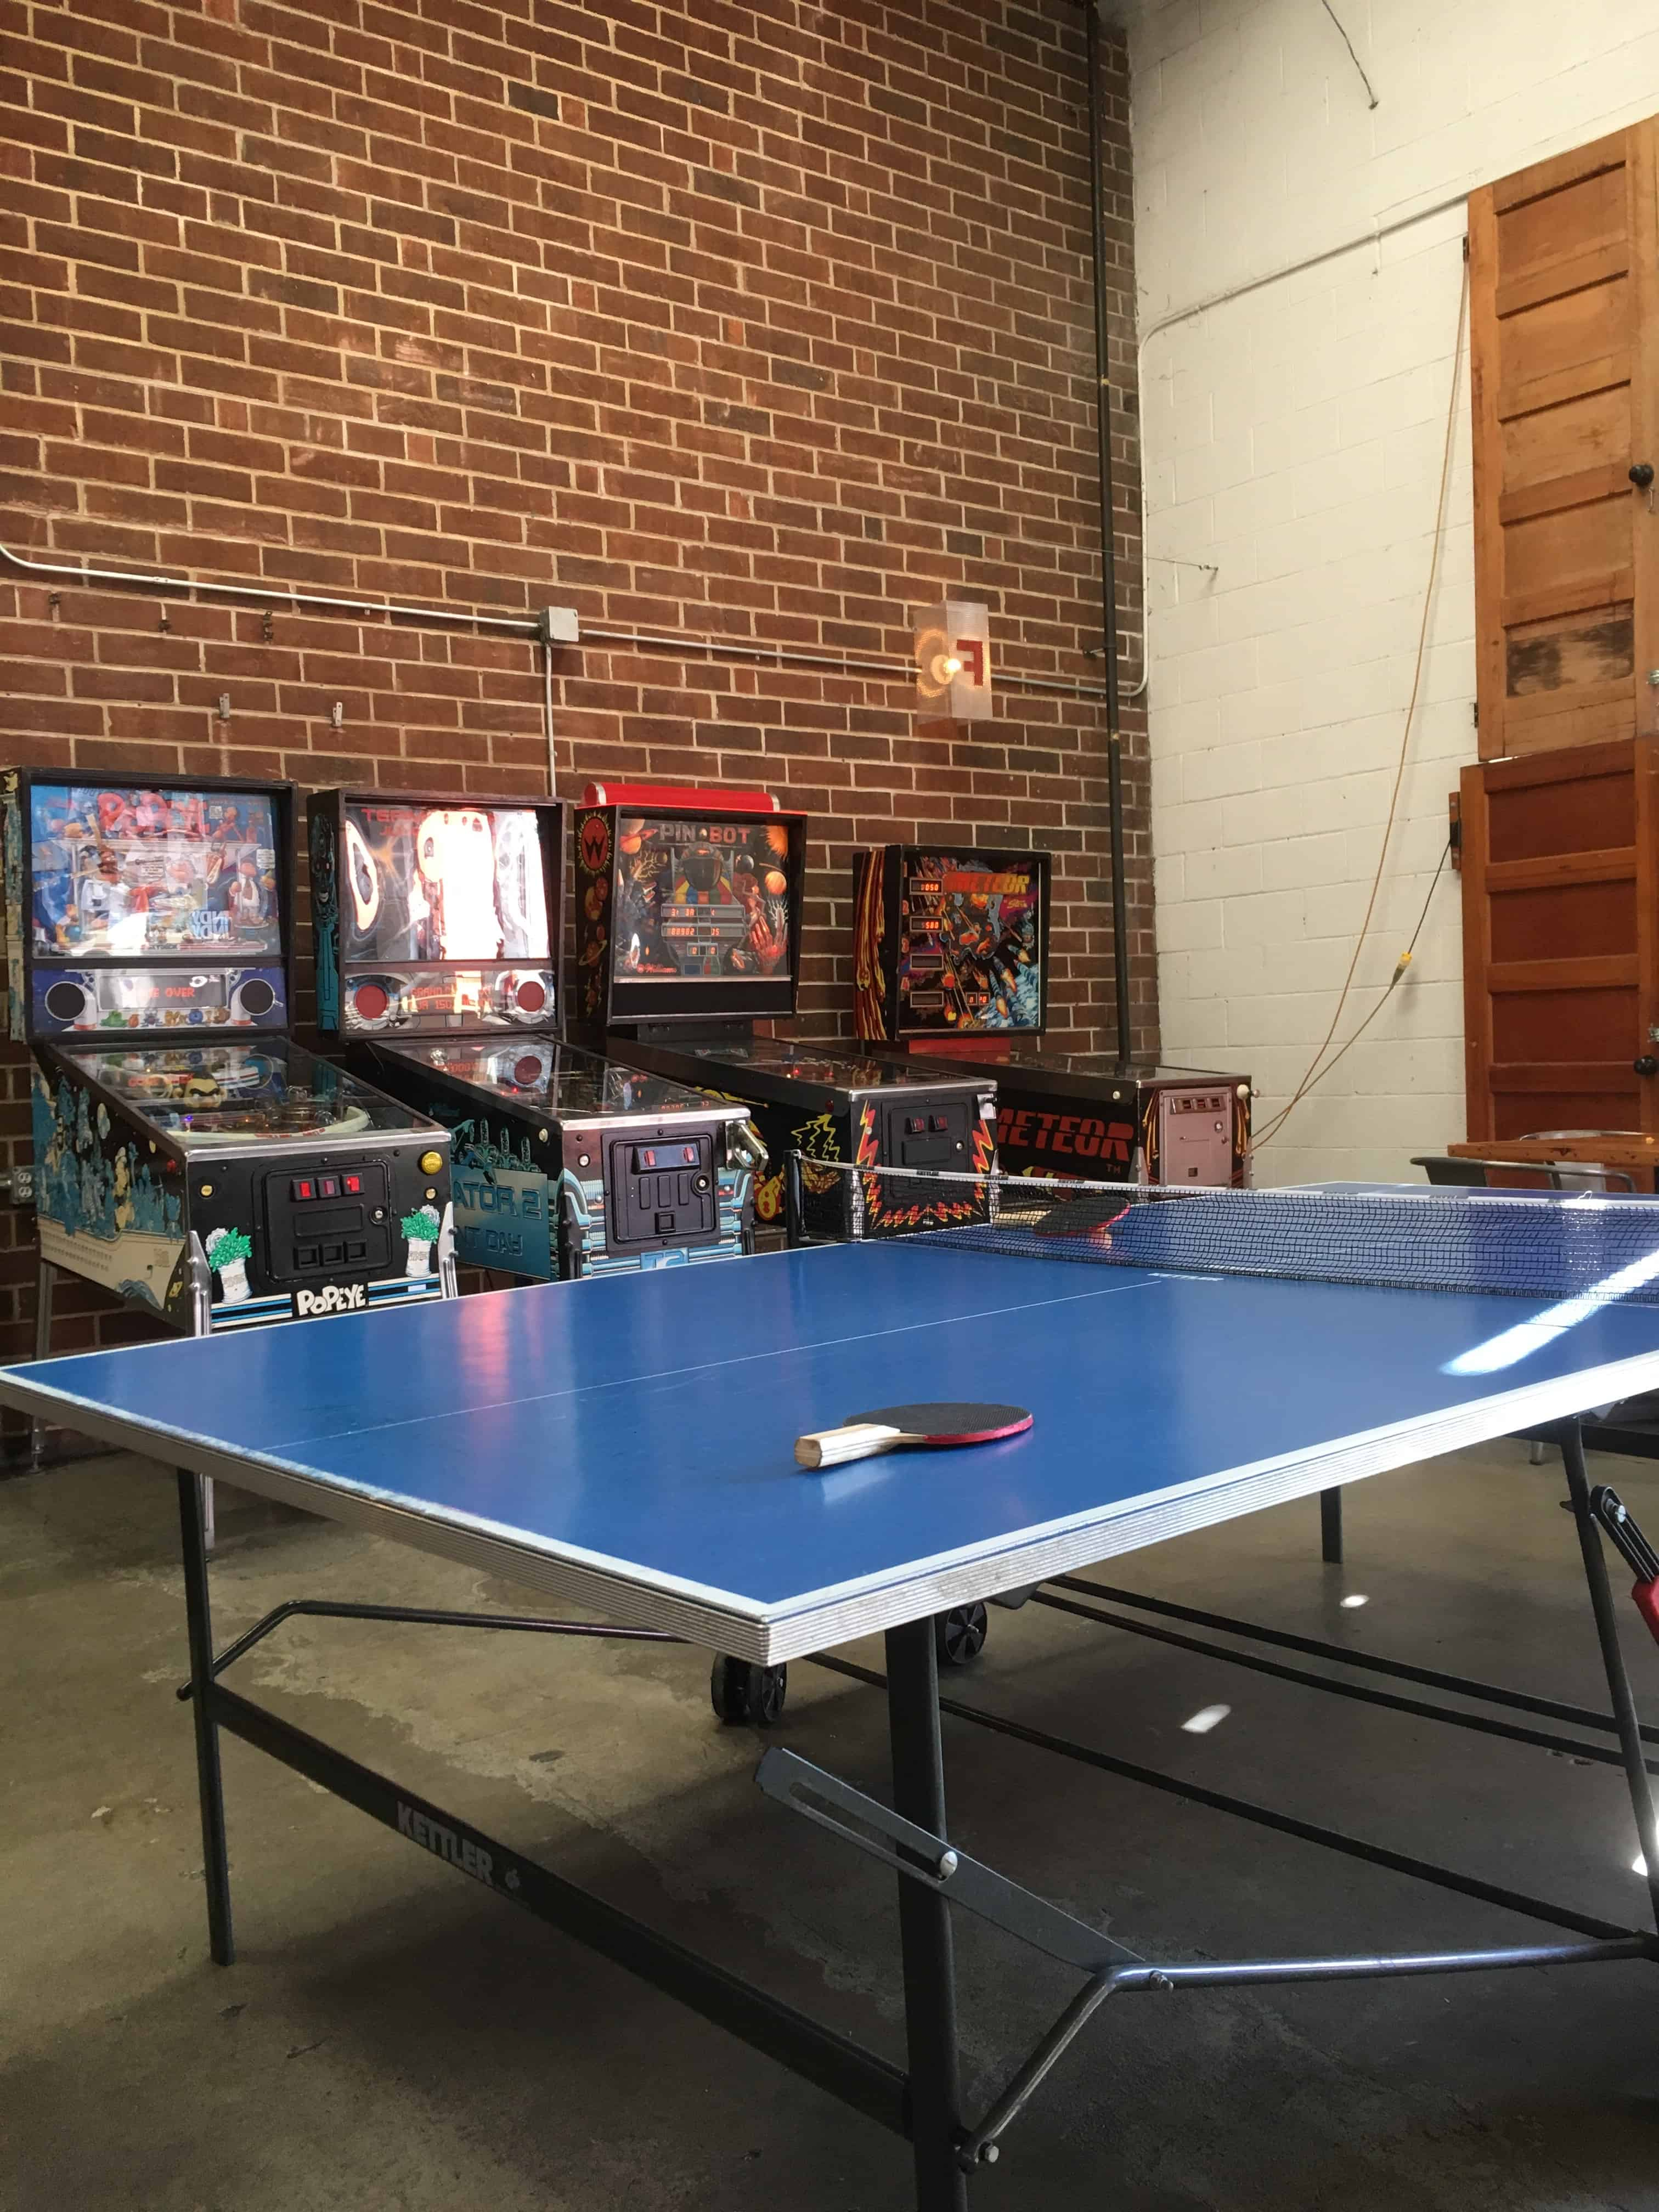 ping pong table with arcade games in back